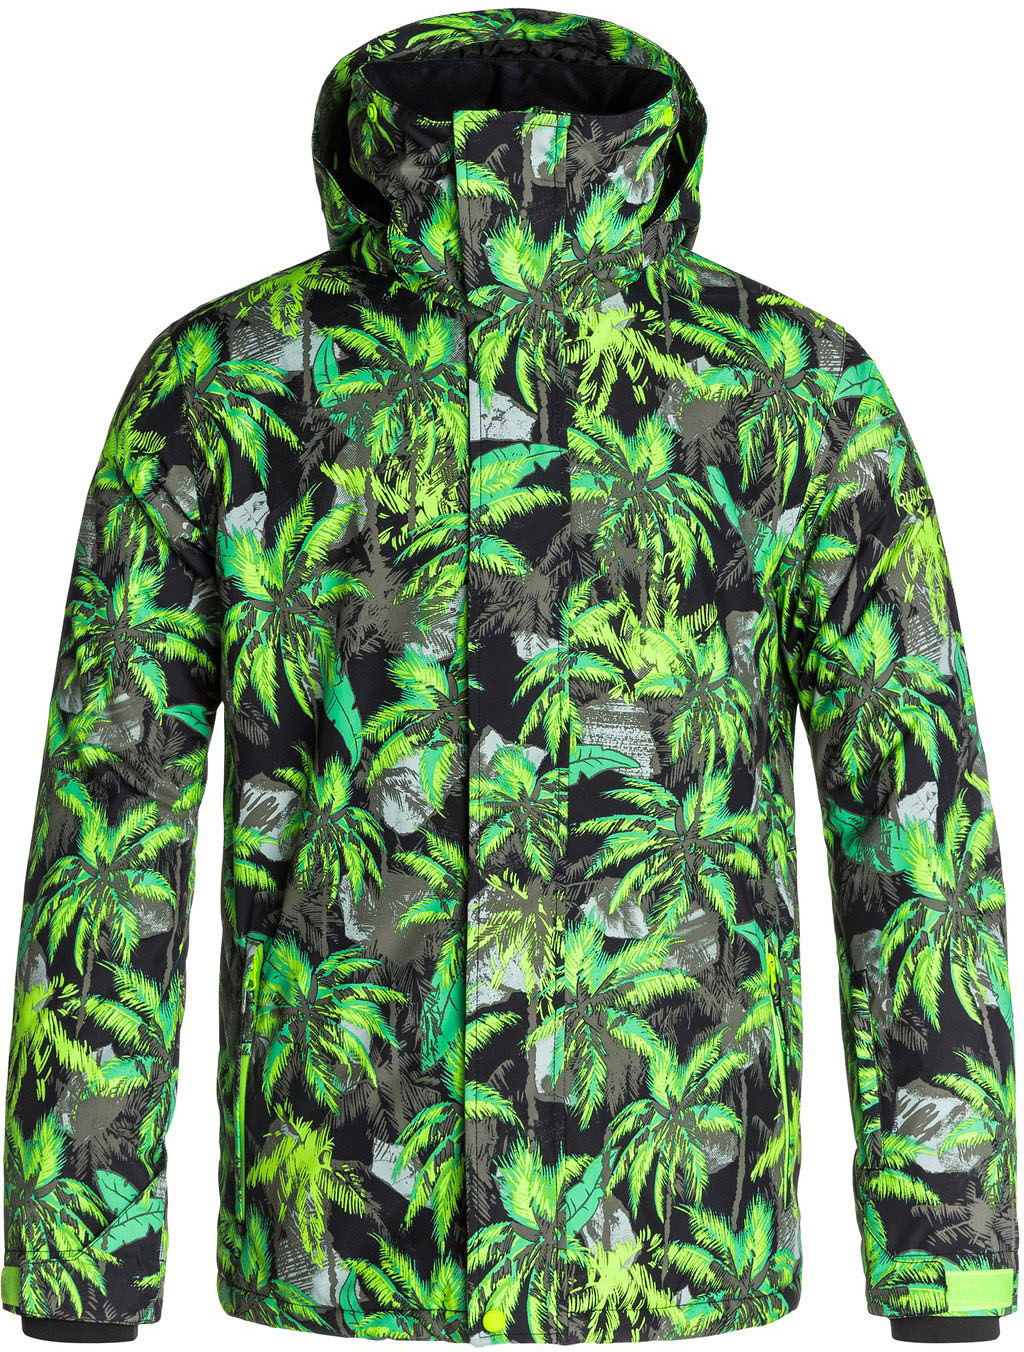 image quiksilver-mission-printed-shell-snwbrd-jkt-sweaty-palms-grn-16-jpg